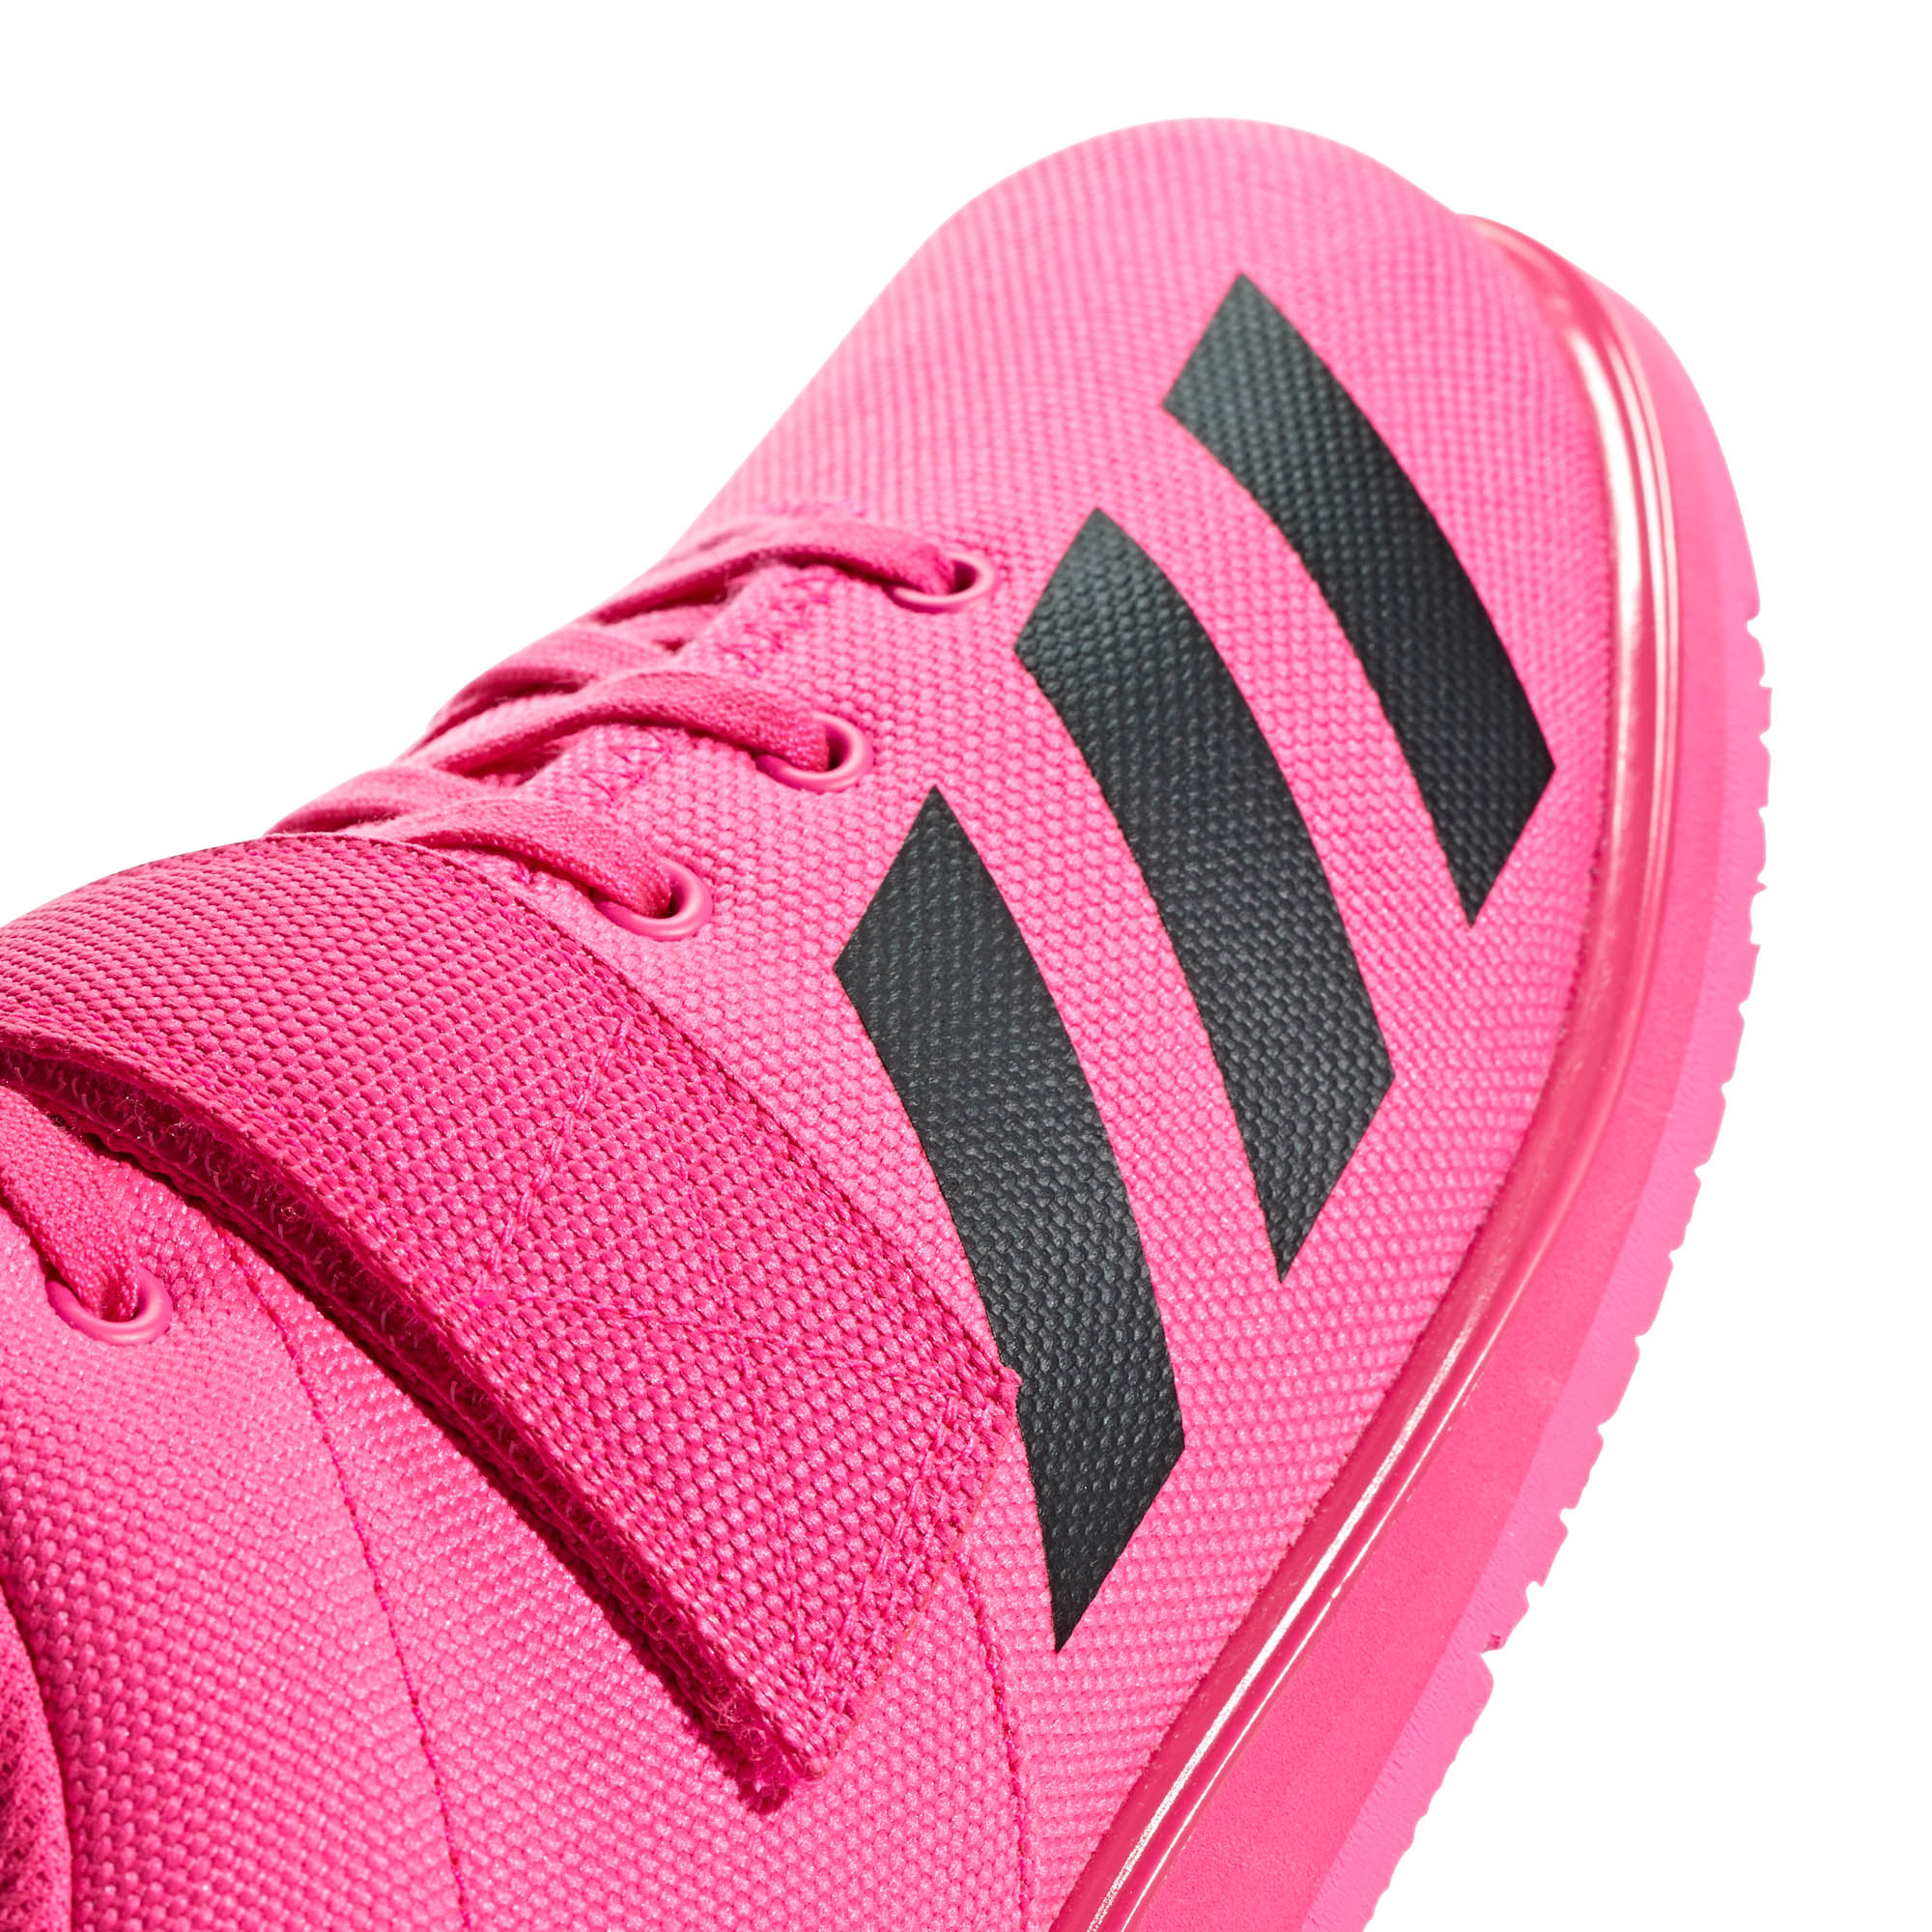 4712d5f5918e Adidas Powerlift 4 donna adulto Weightlifting Powerlifting scarpa rosa